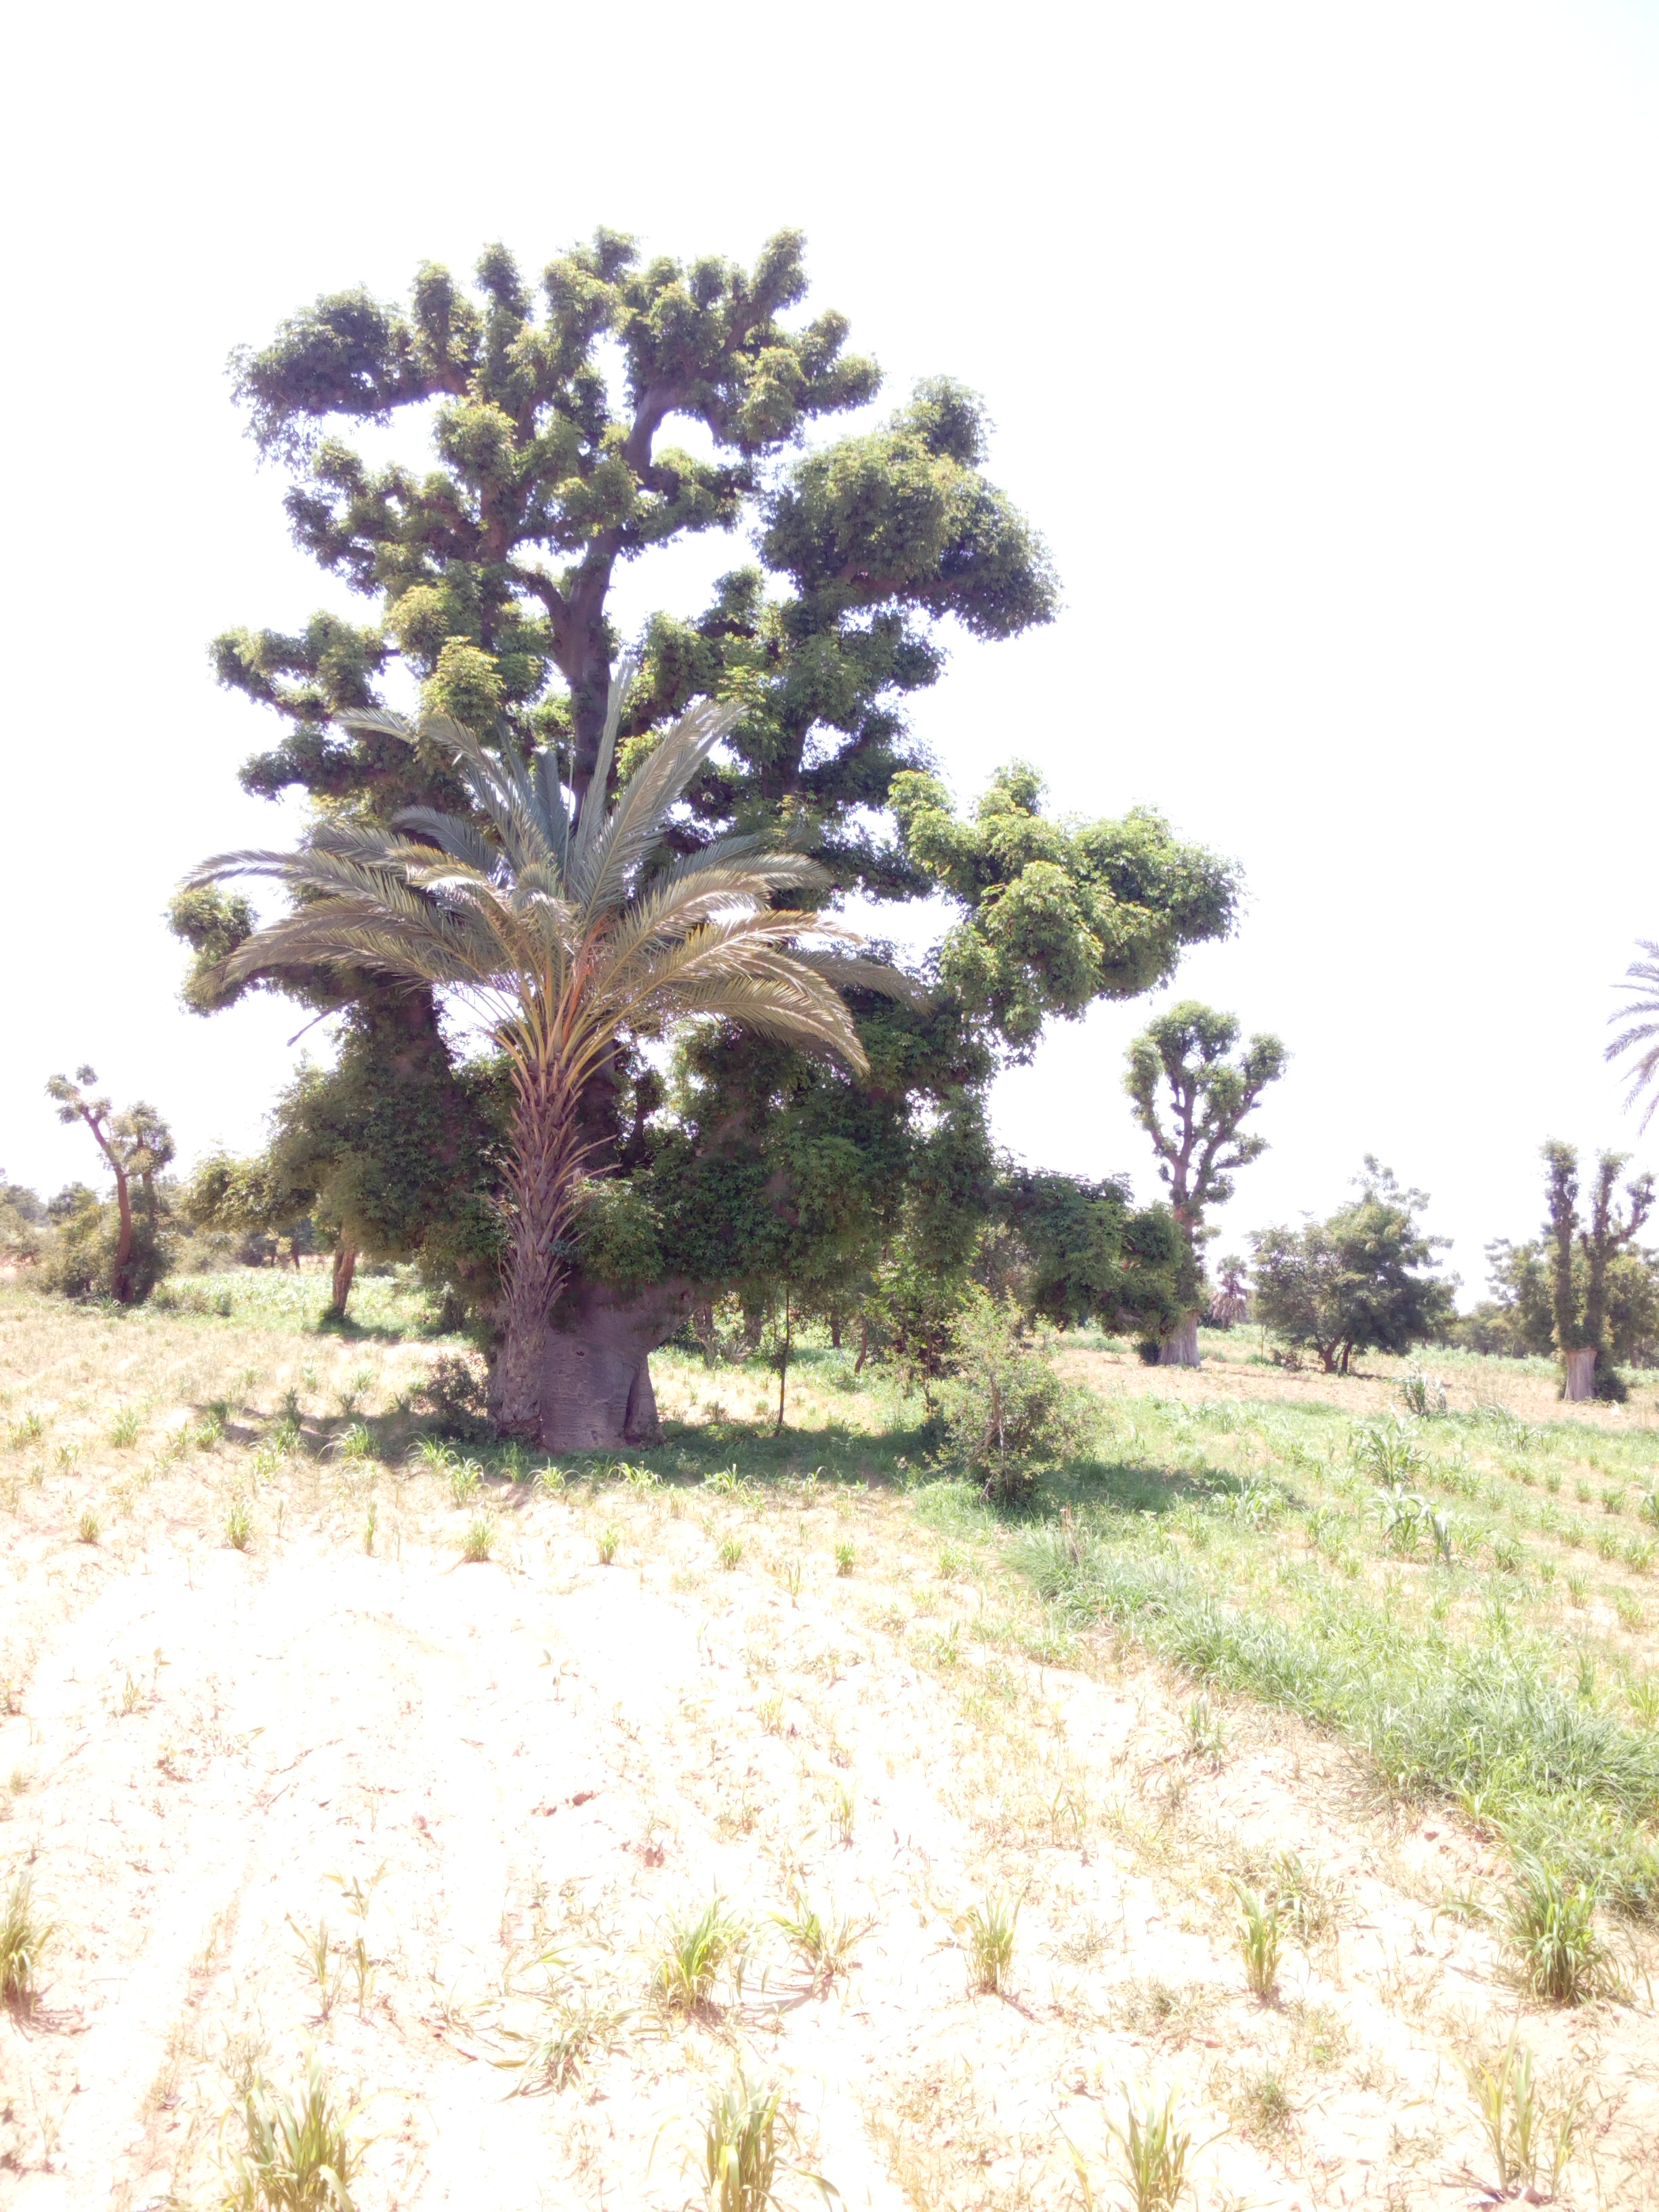 File:BAOBAB tree with DATE PALM tree sharing the same root  in